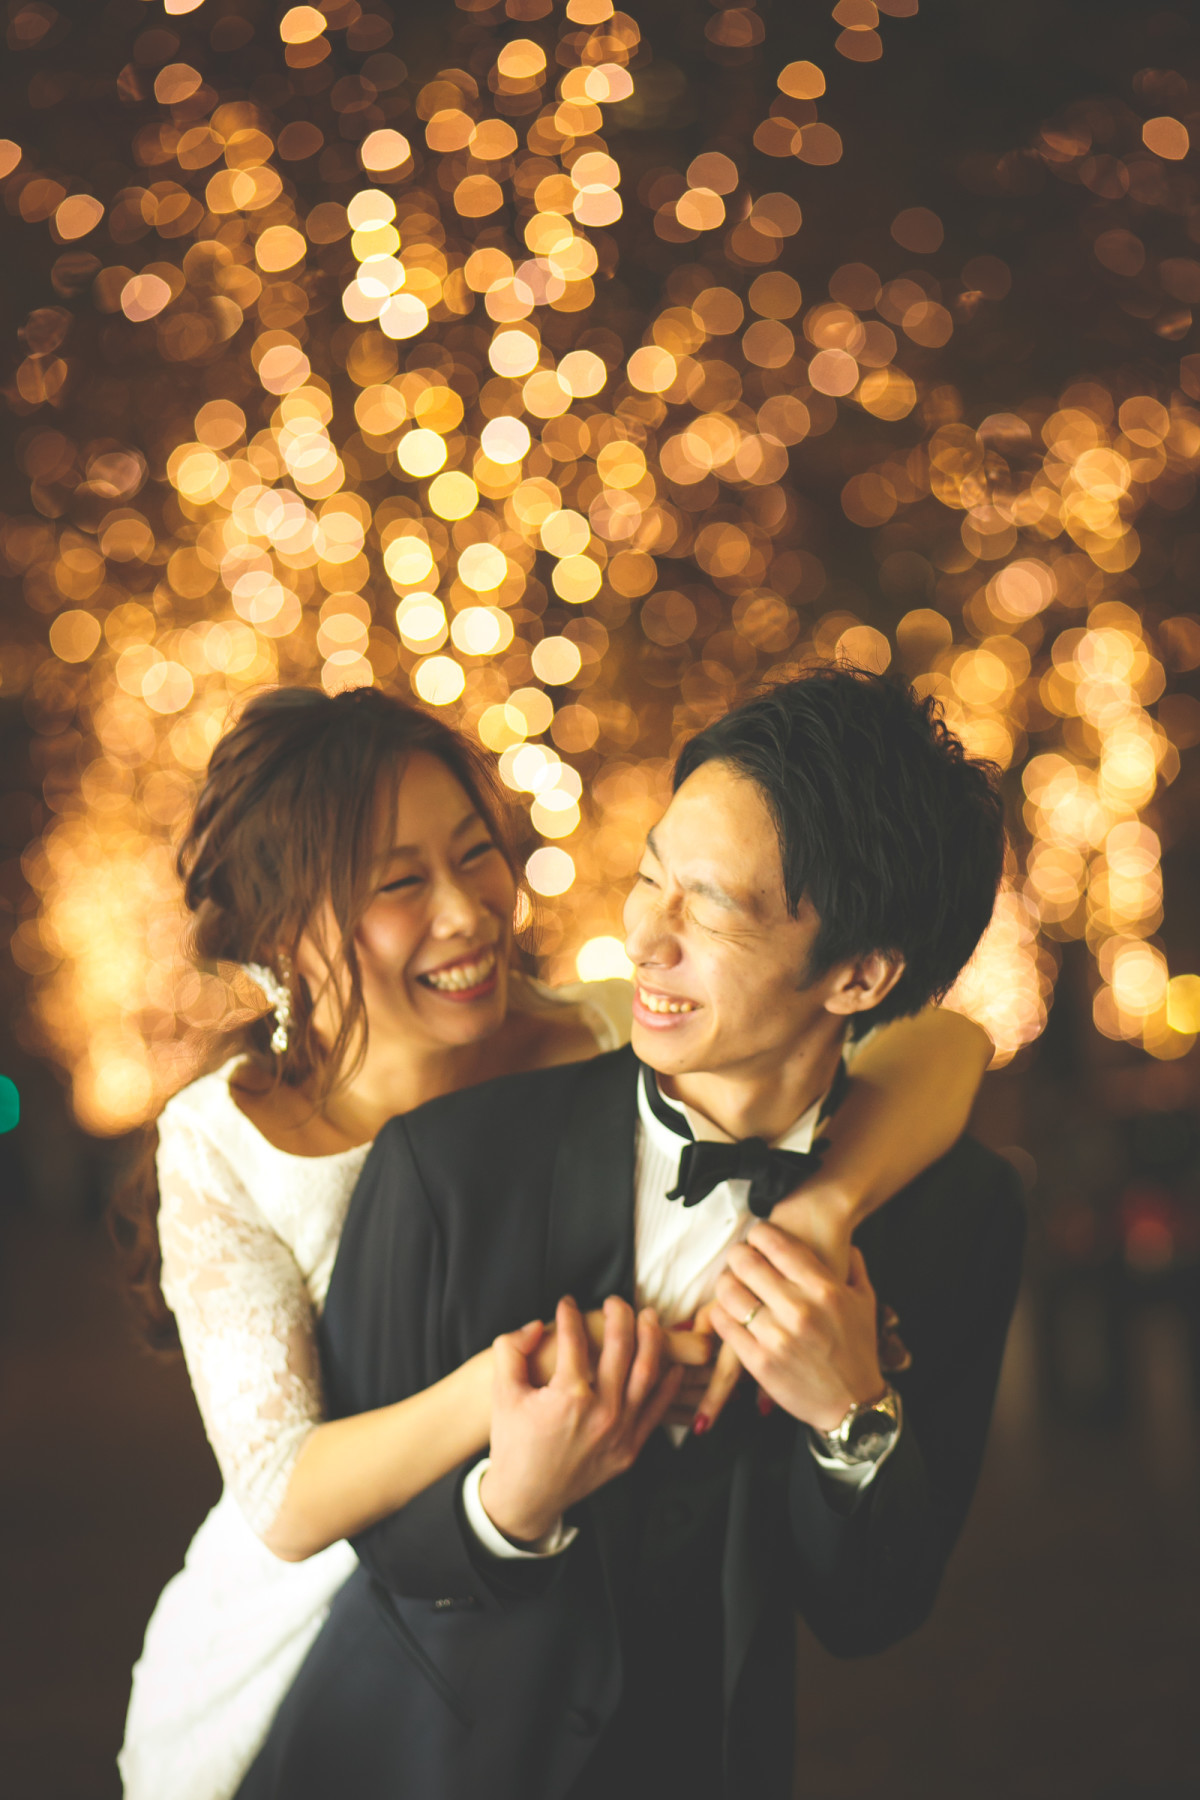 beautiful couple photo by Ayako Photography